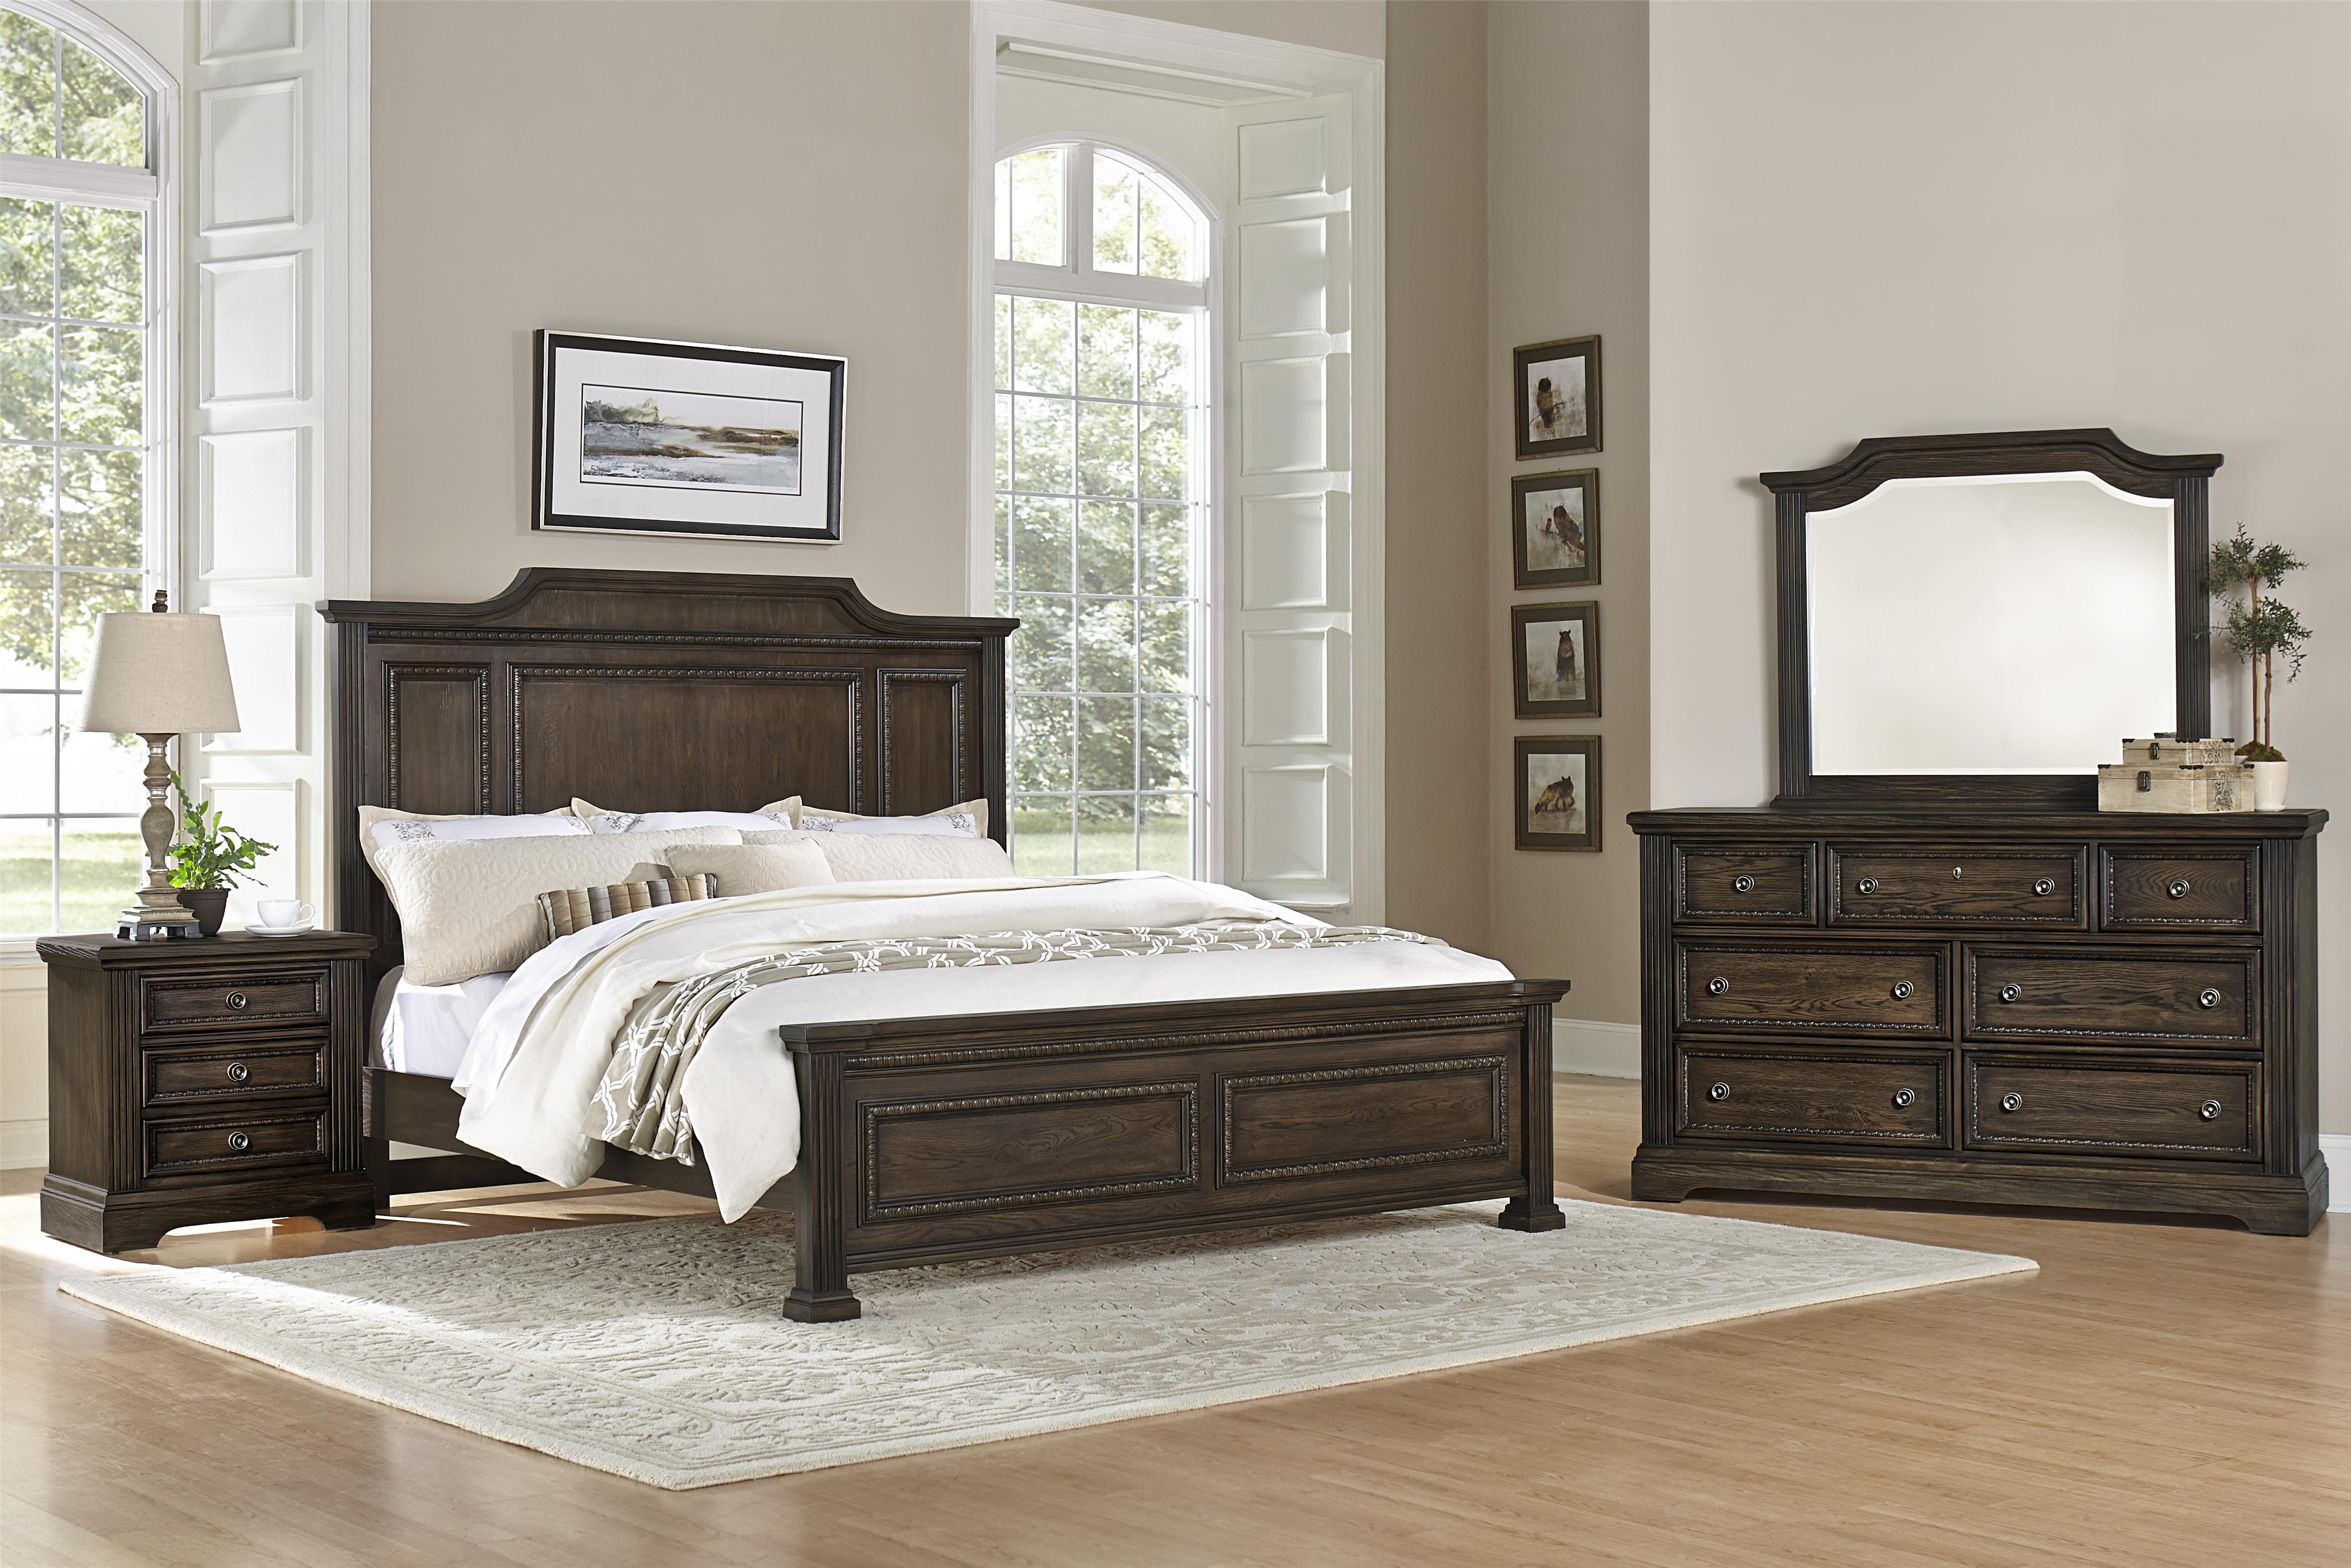 Vaughan Bassett Affinity Queen Bedroom Group - Item Number: 560 Q Bedroom Group 1